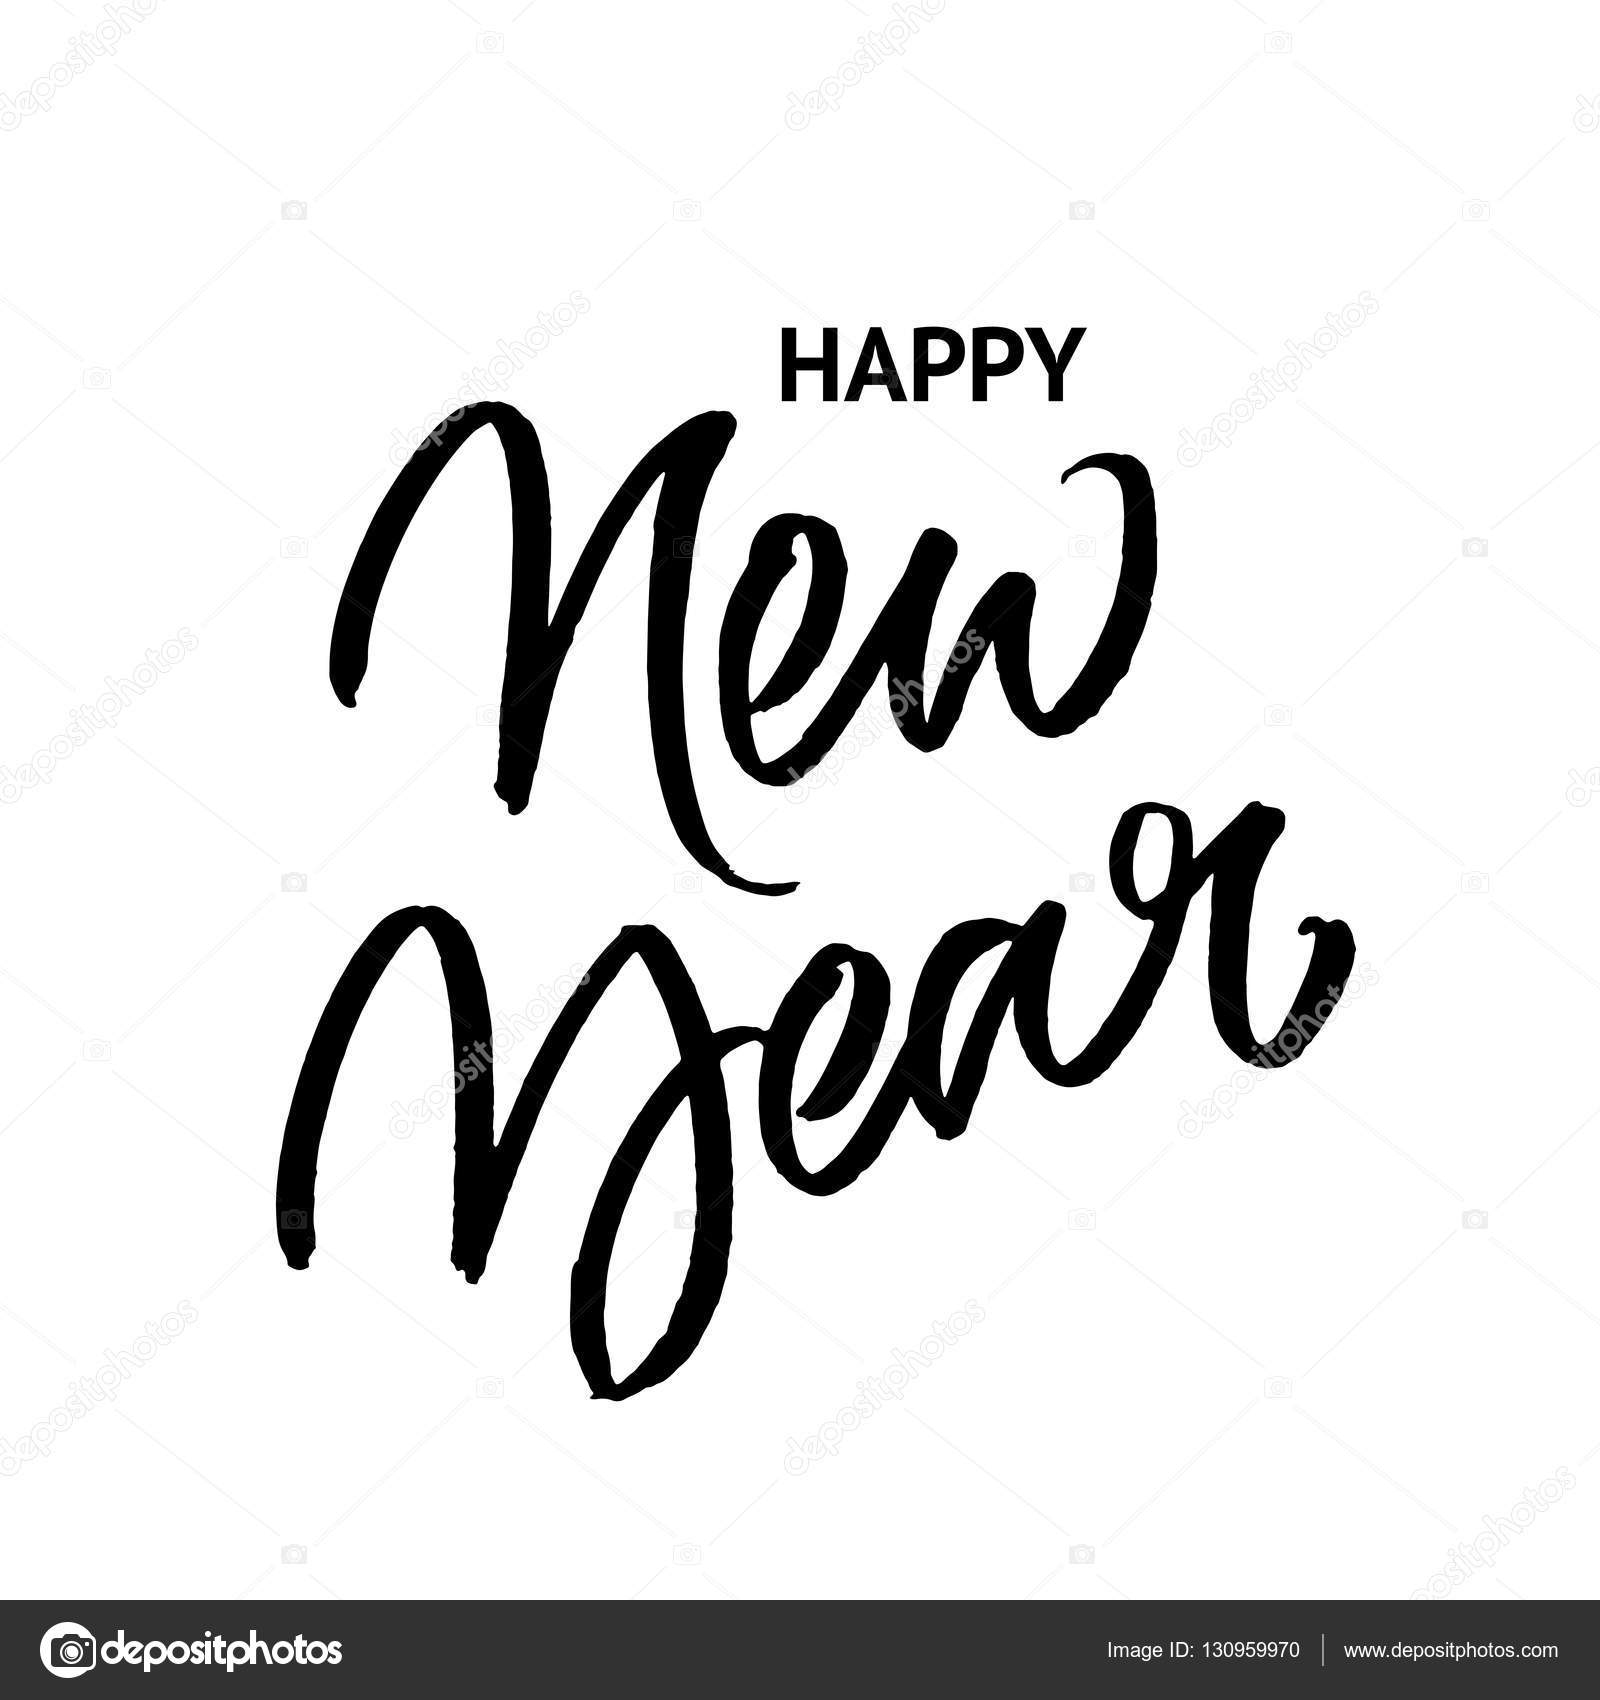 Happy new year brush calligraphy stock vector � ugina